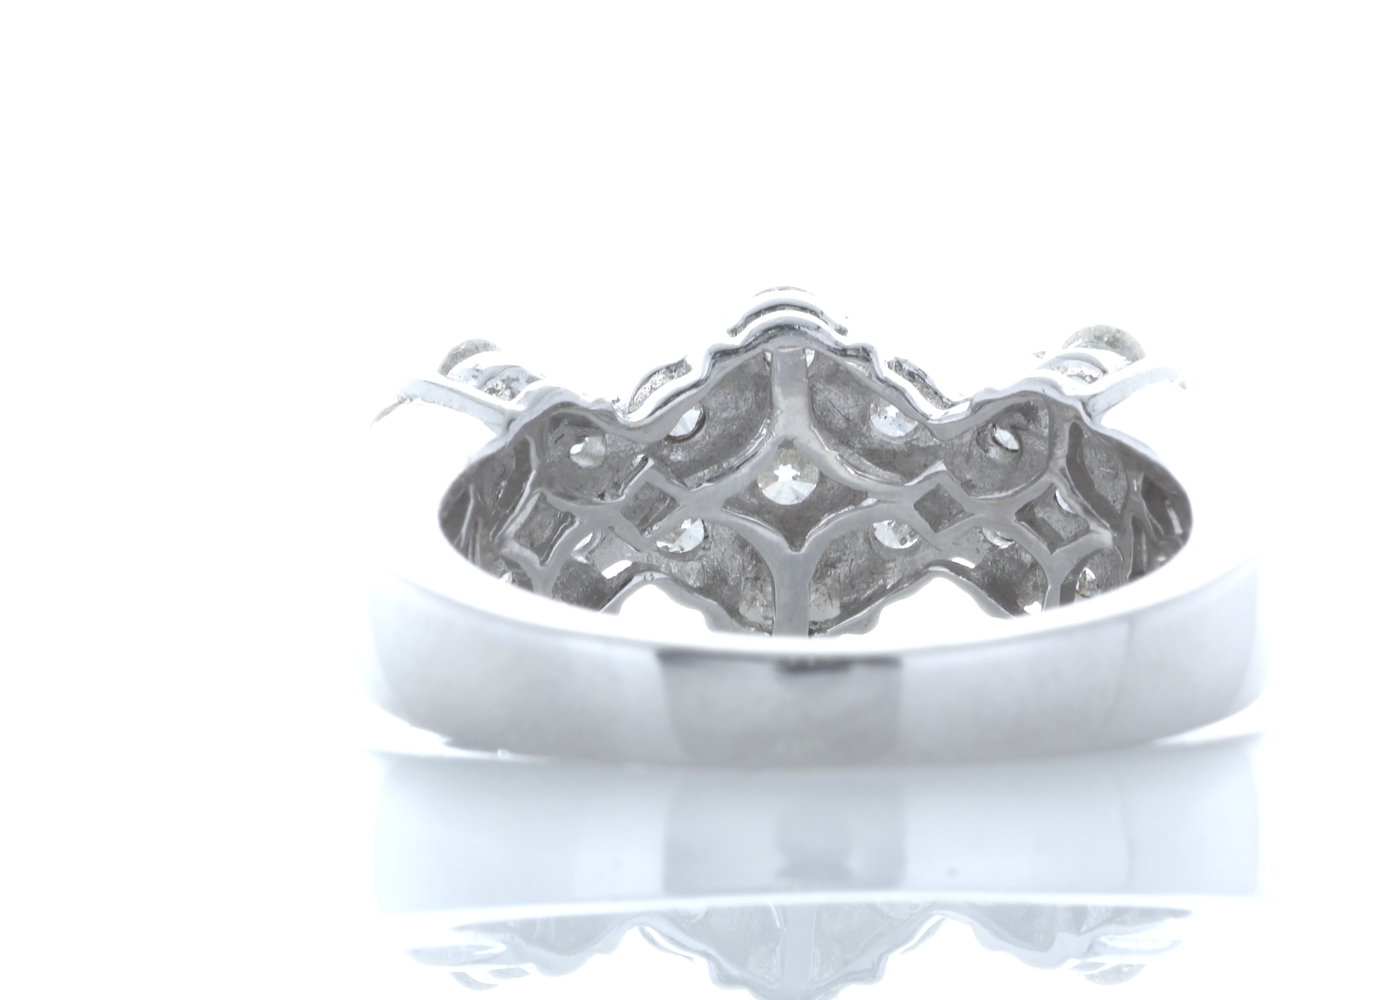 18ct White Gold Flower Cluster Diamond Ring 1.50 Carats - Image 3 of 5